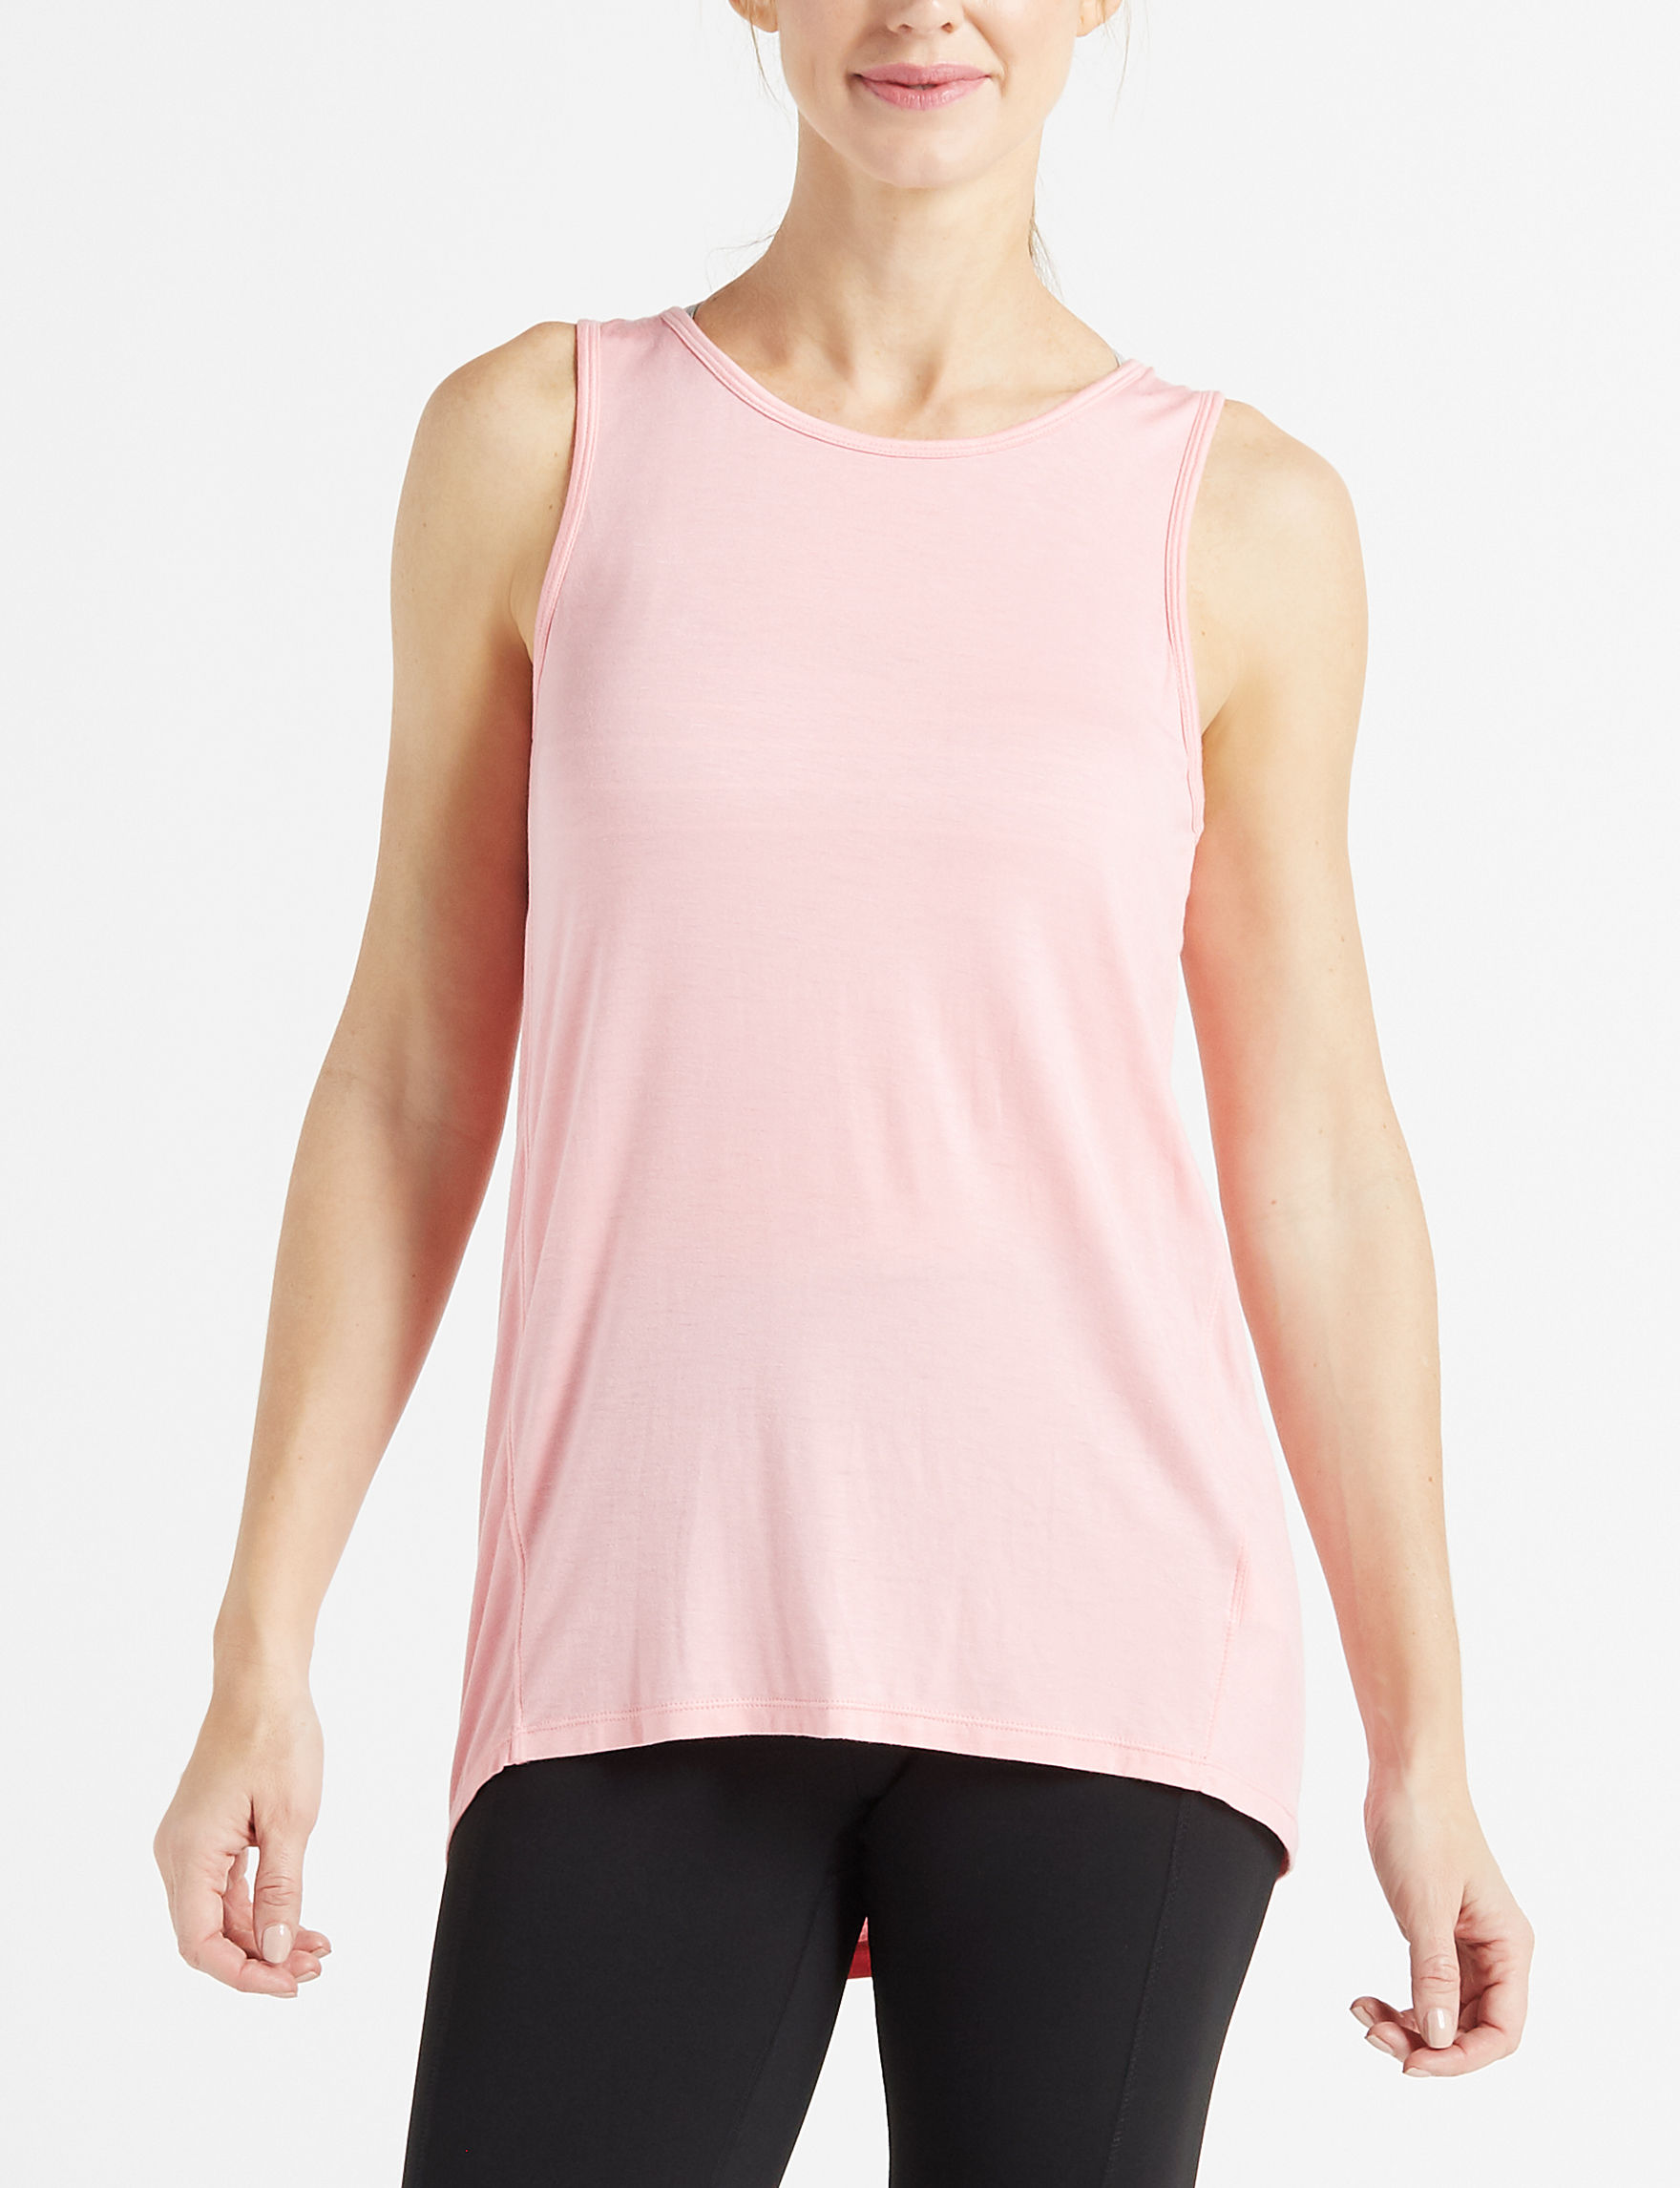 Gaiam Coral Active Tees & Tanks